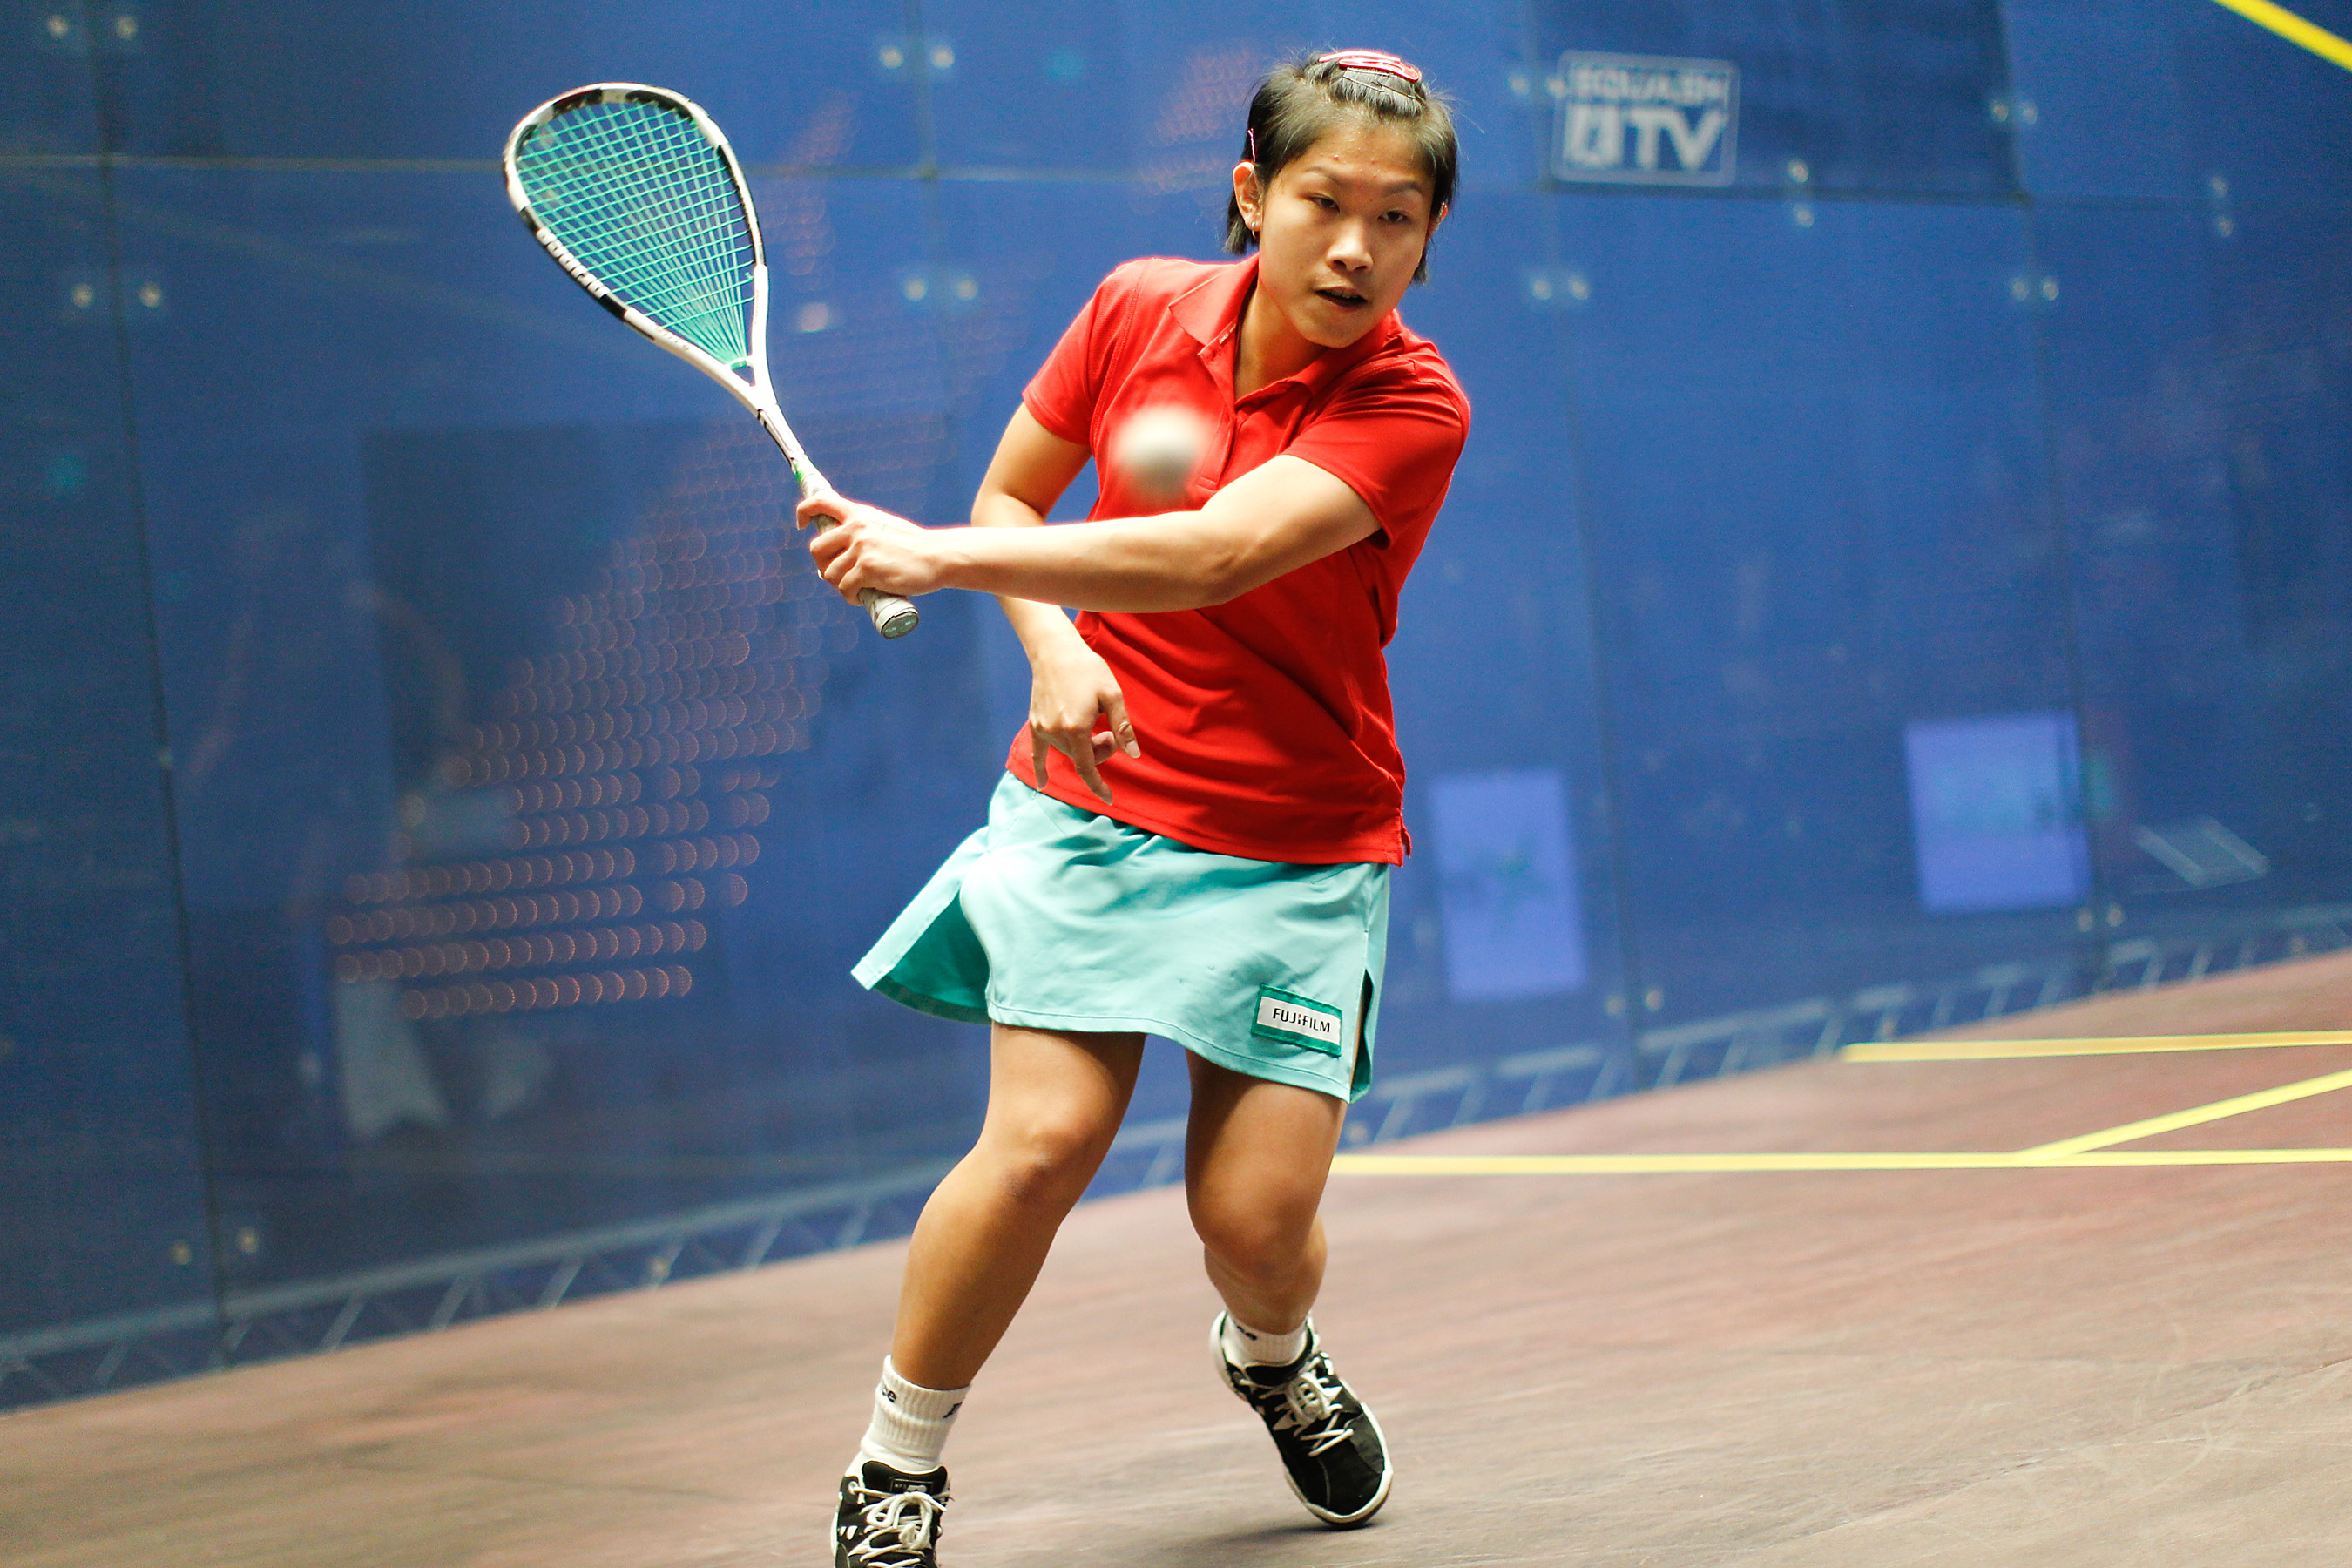 The female Hong Kong player Annie Au was titled champion of the tournament's female competitions, after defeating the Egyptian player Habiba Mohamed in the final game with scores of 7-11, 11-8, 11-9, 4-11, 8-11.